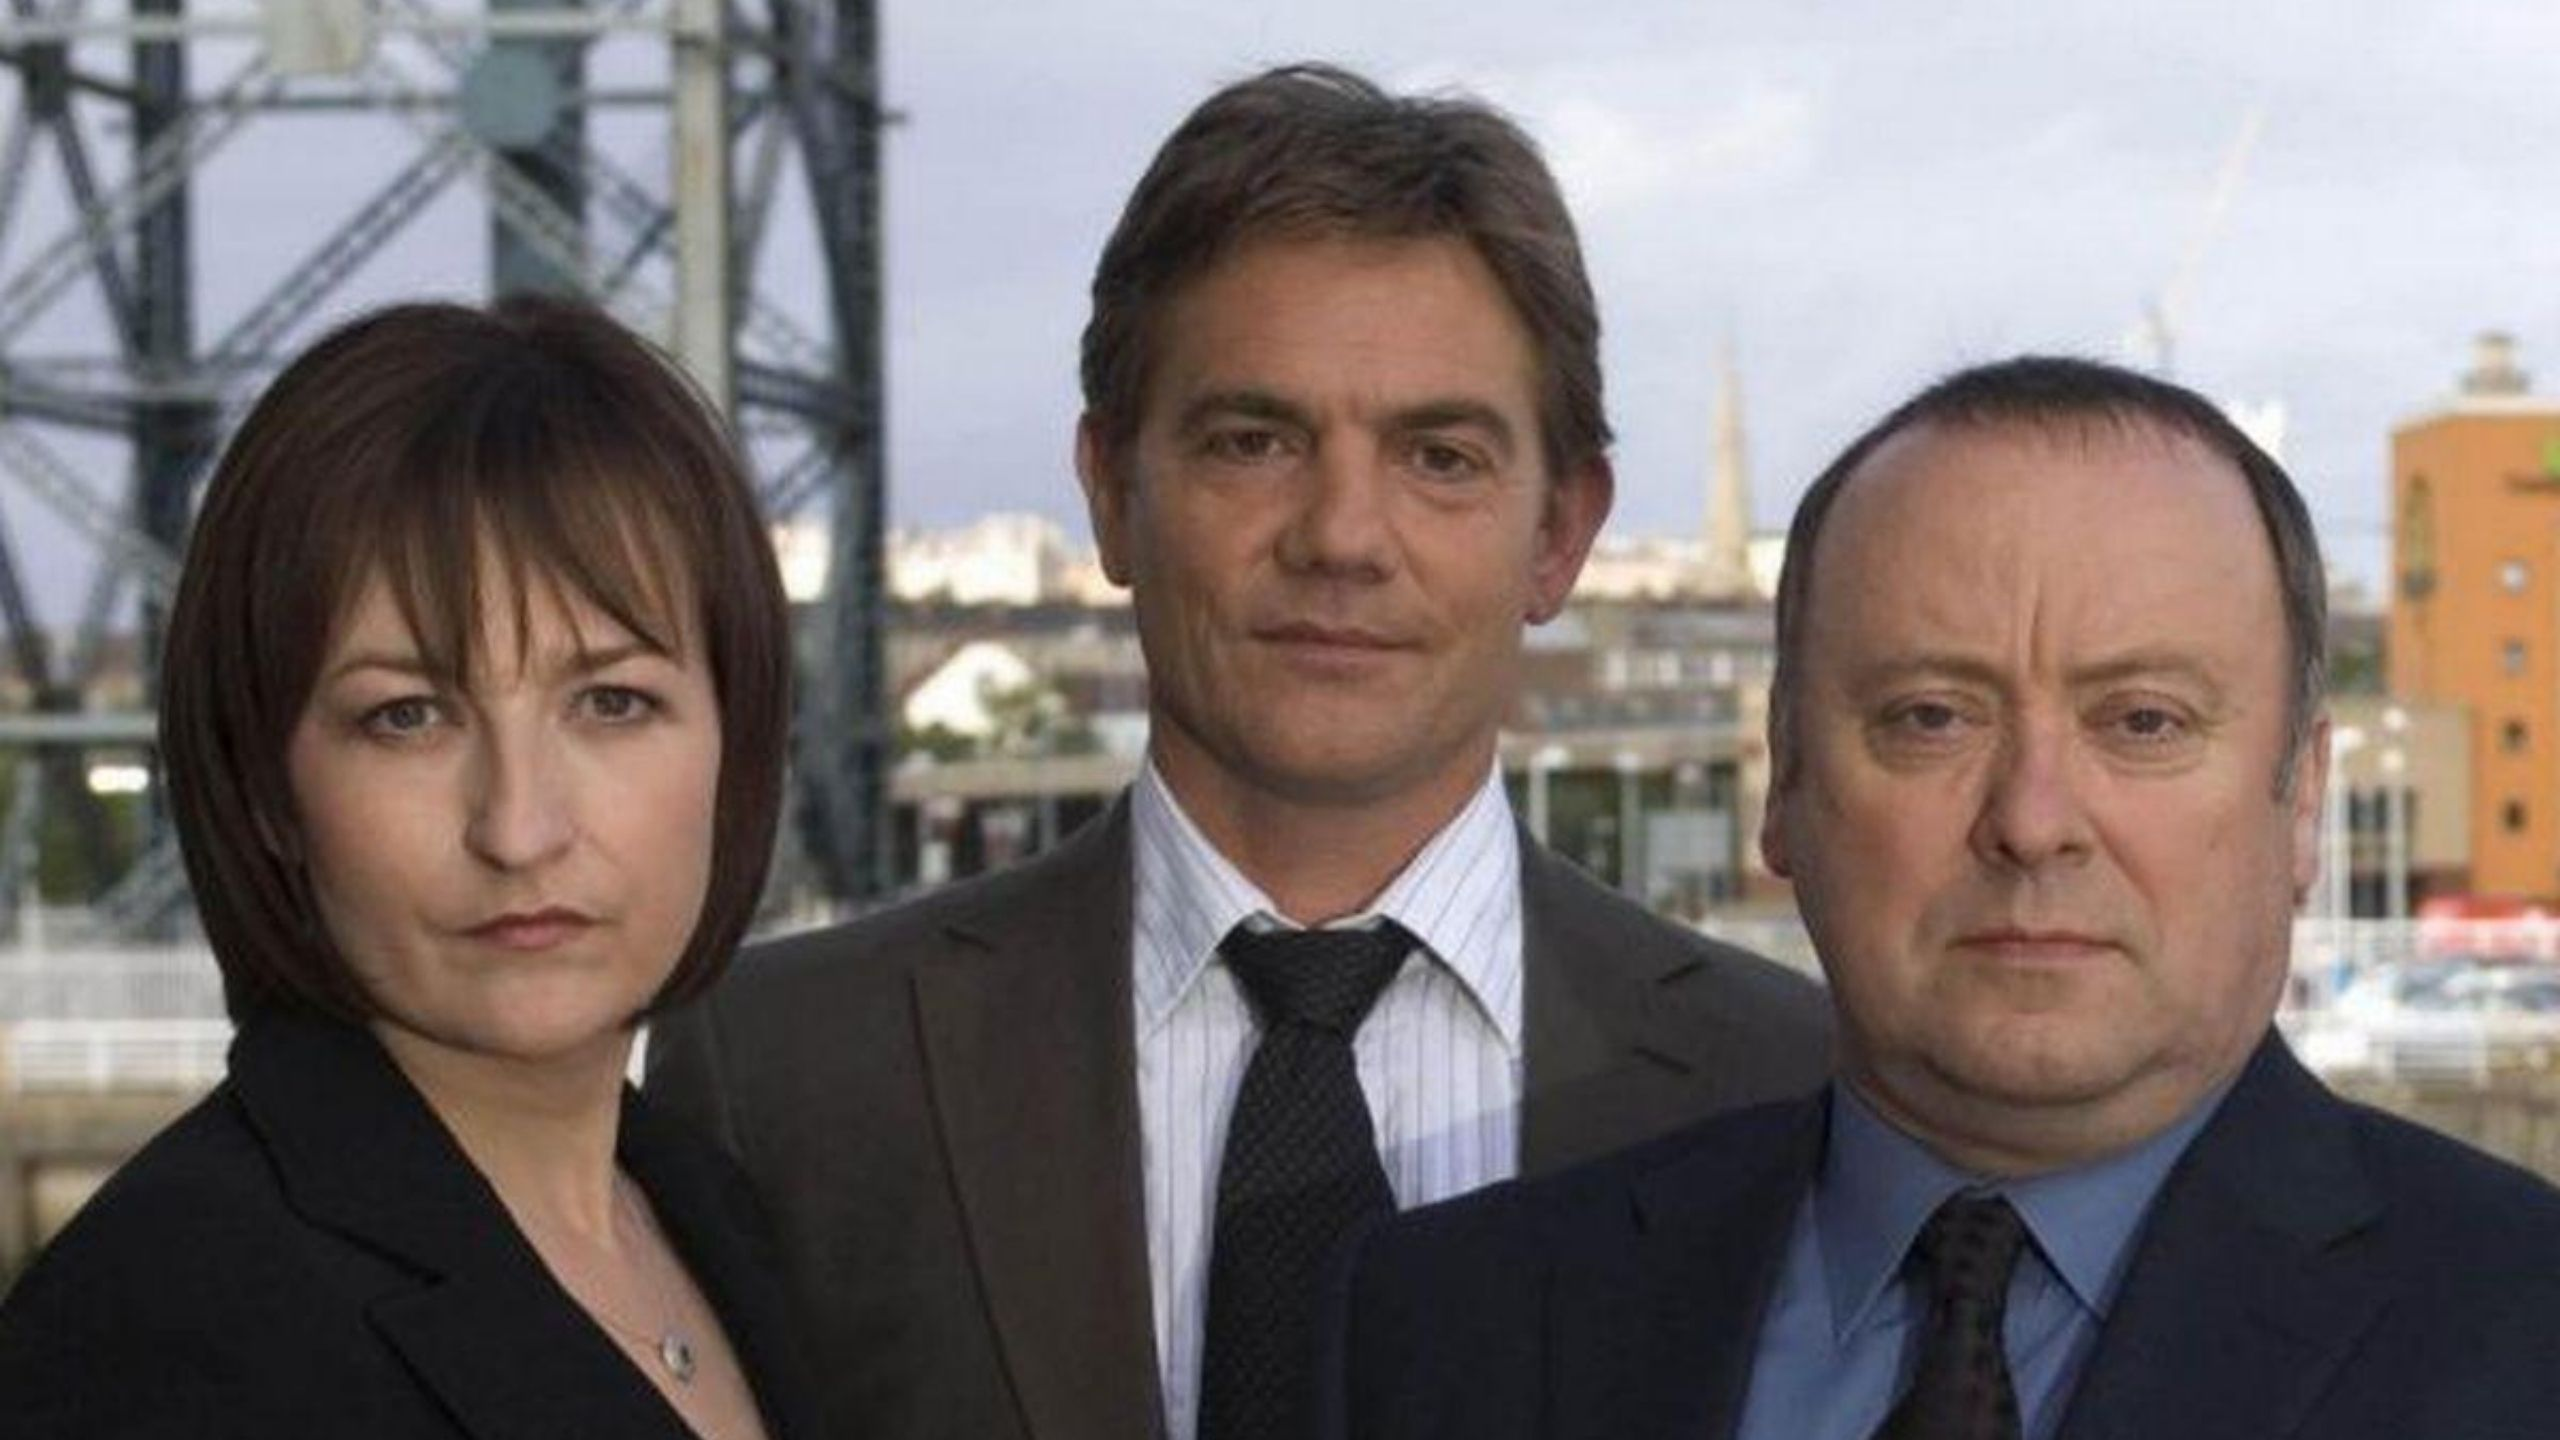 Cast of Taggart dressed in Suits with the Glasgow skyline